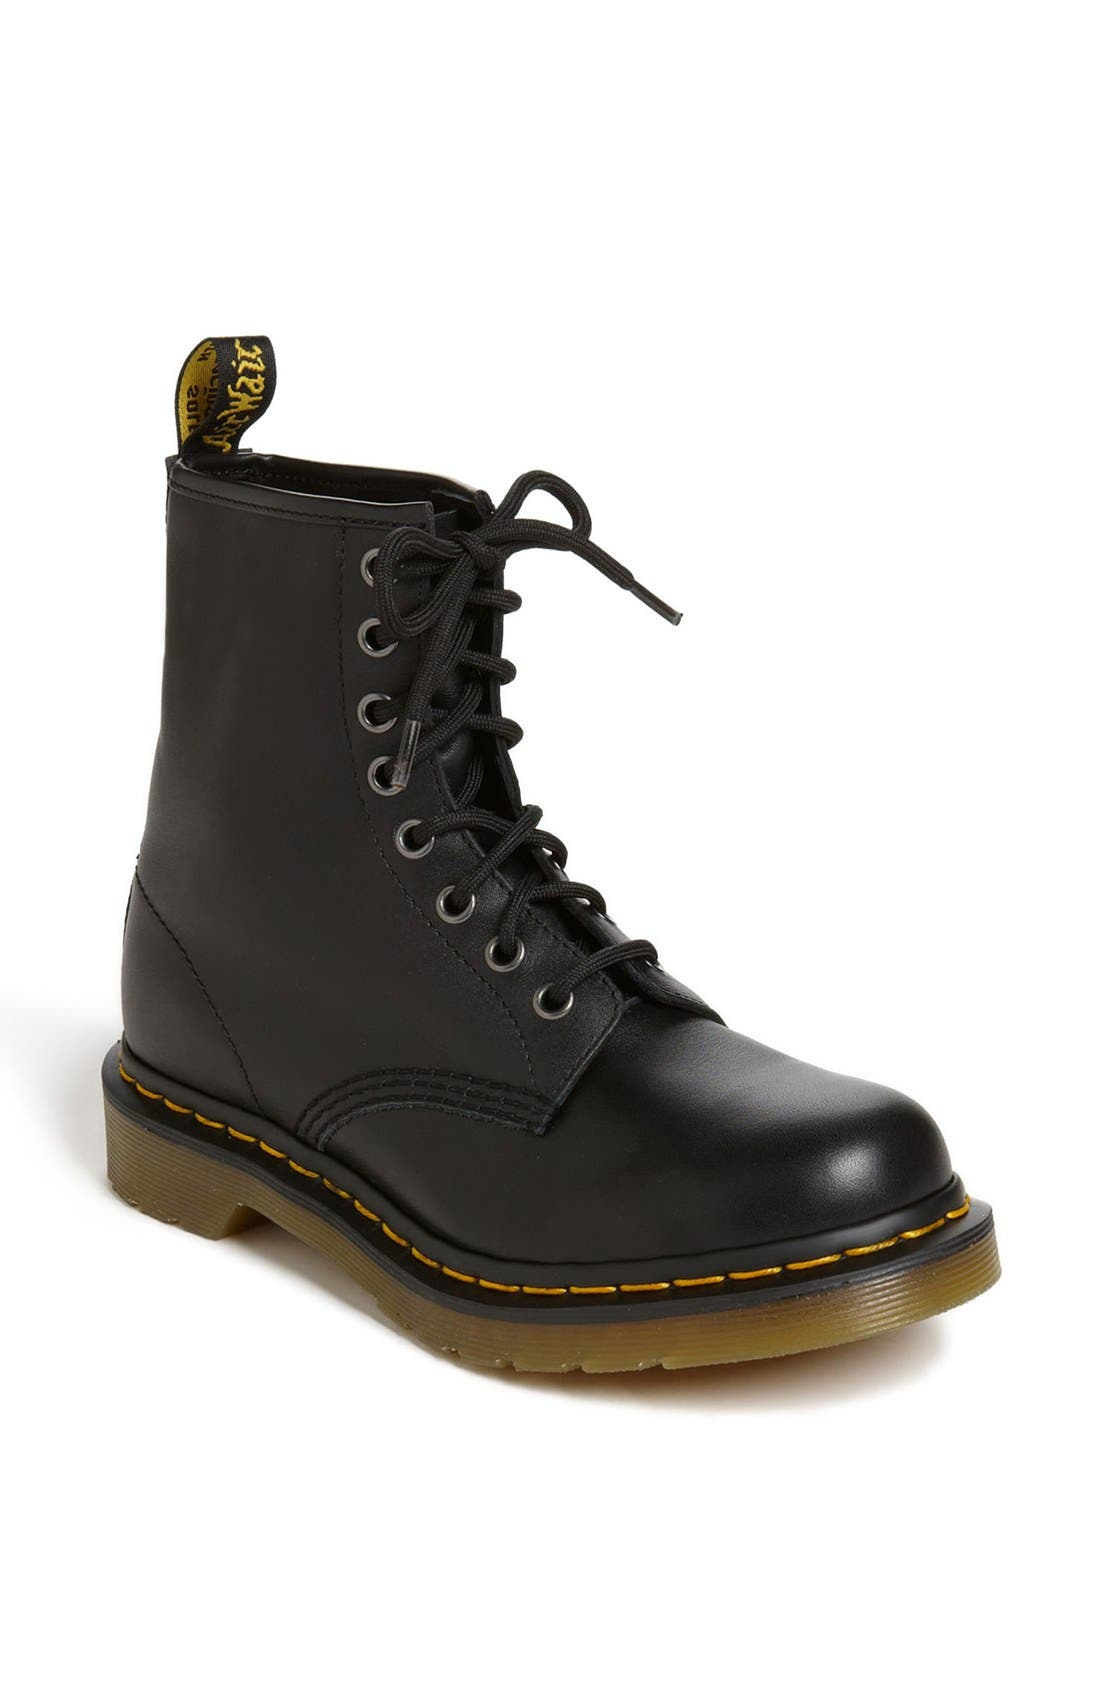 1460 W Boot,                             Main thumbnail 1, color,                             Black